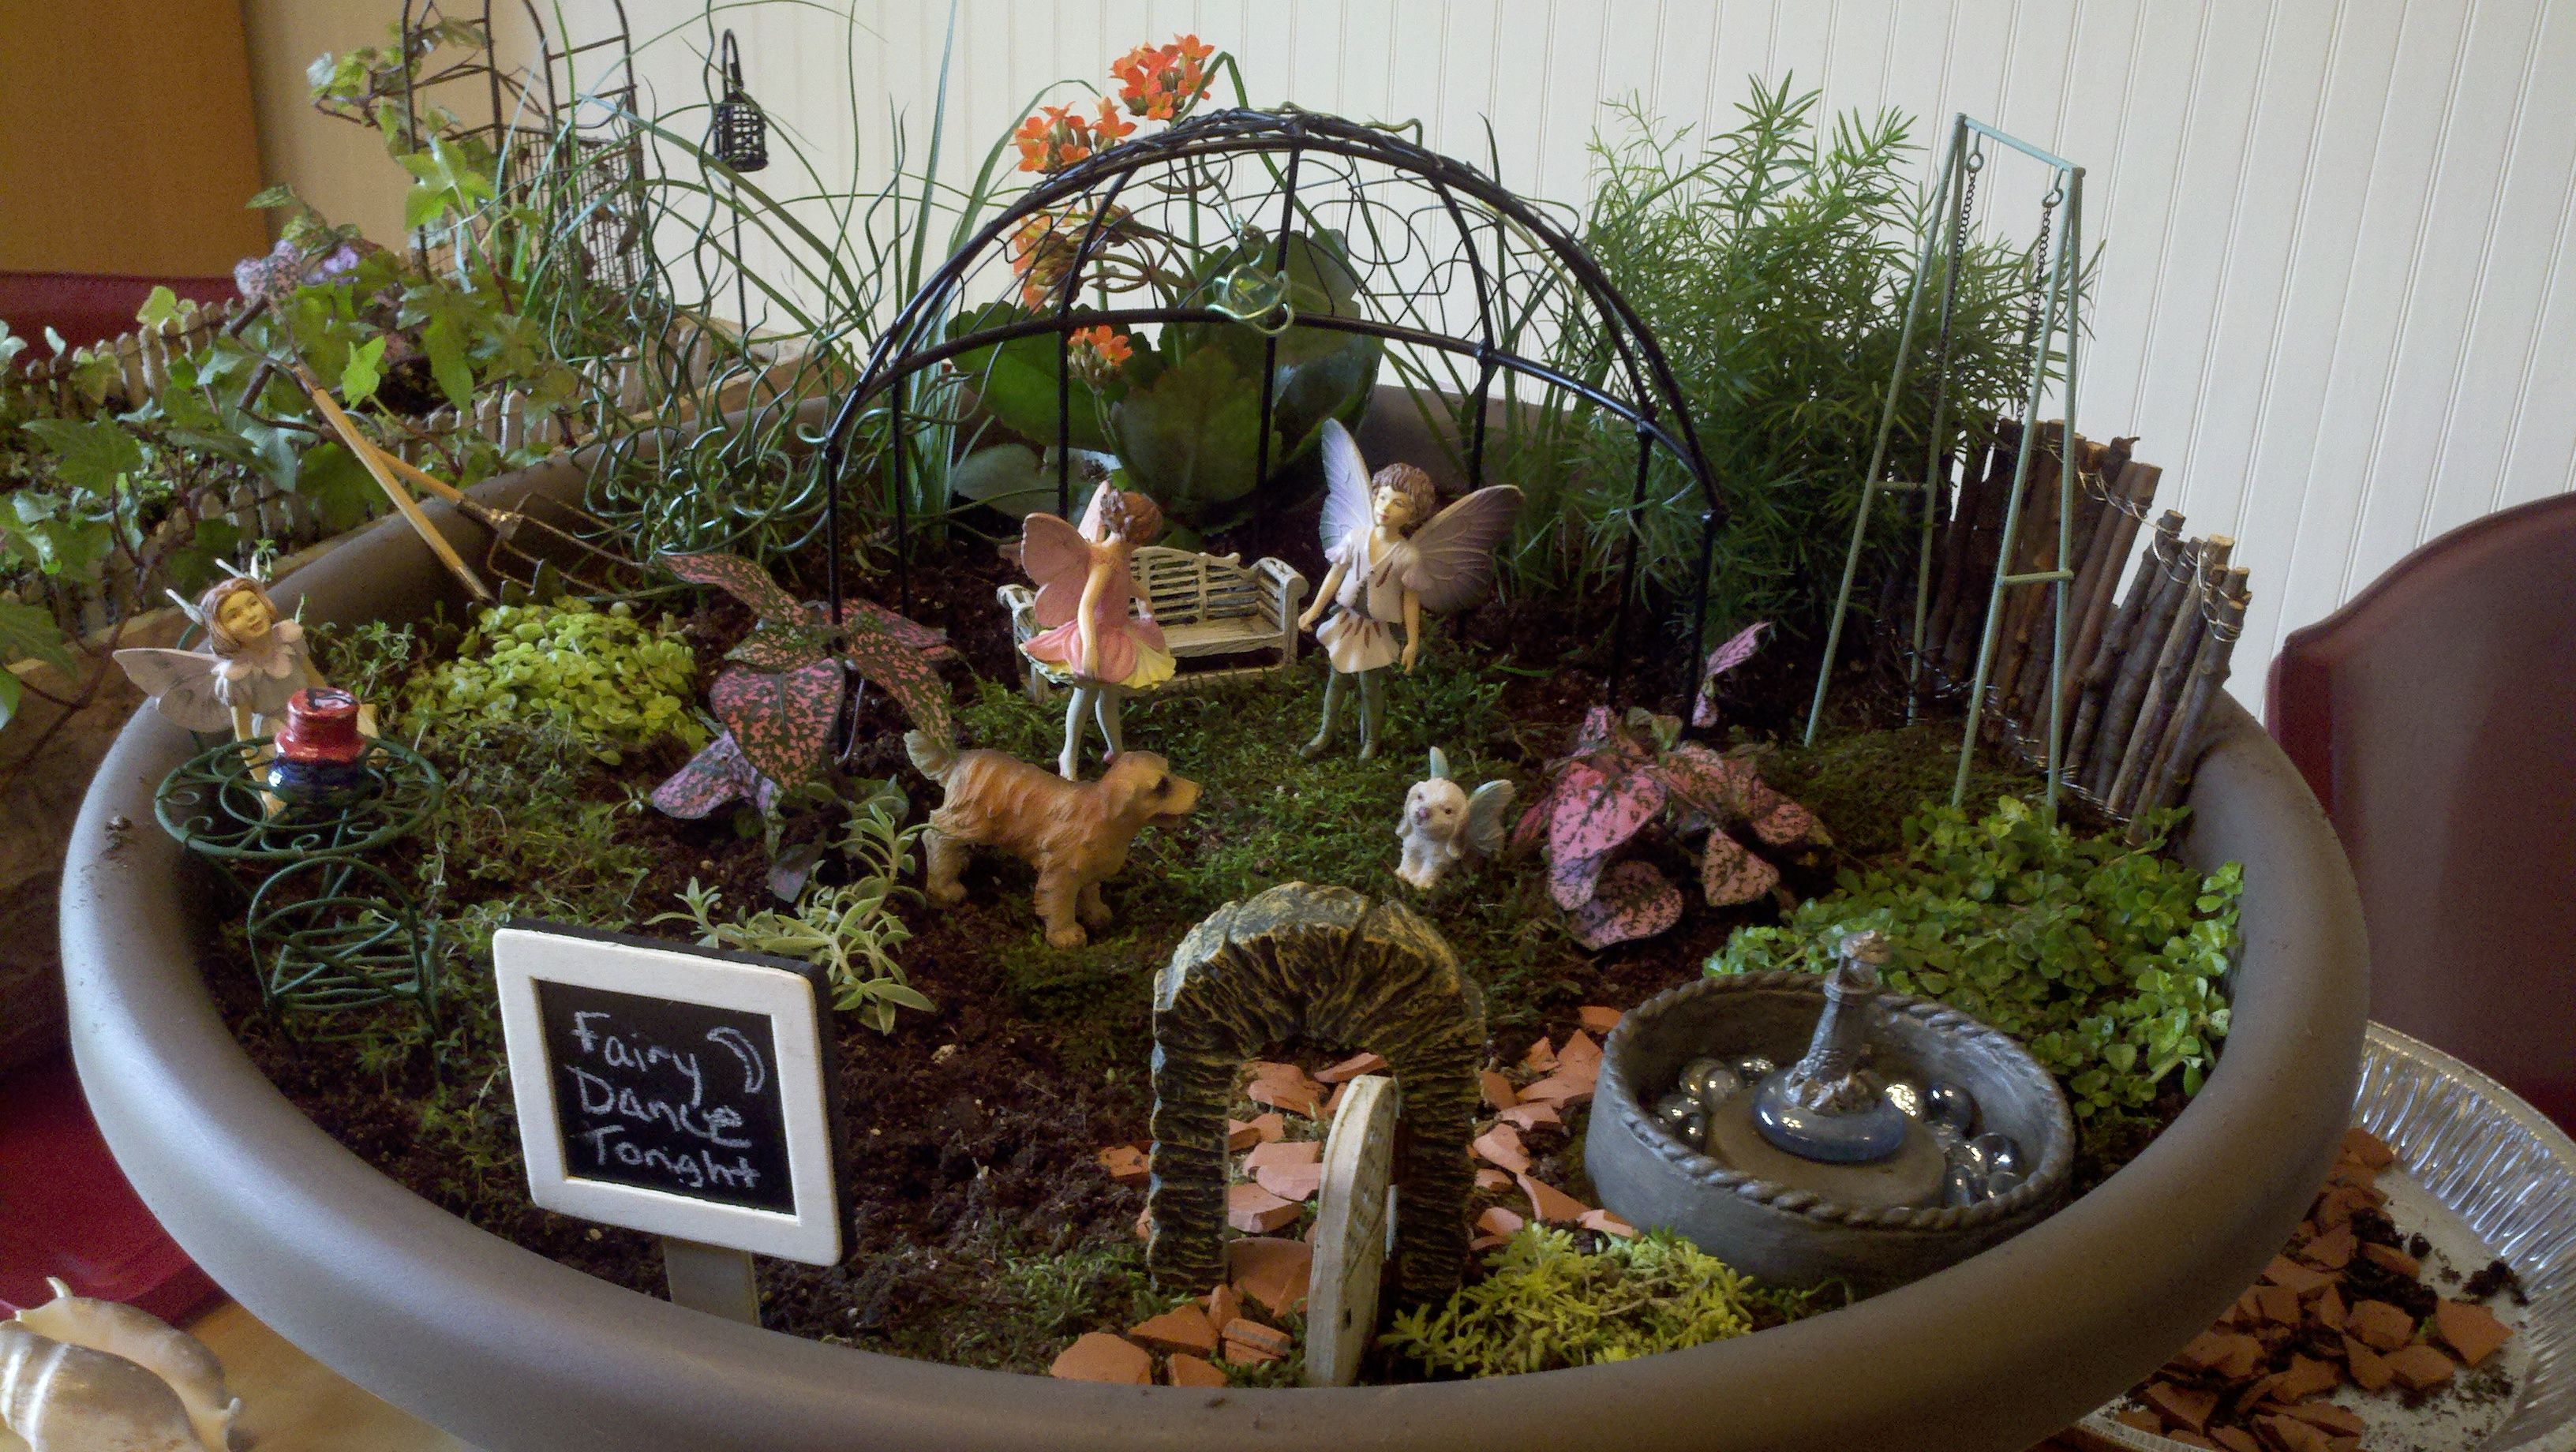 We had a rainy day and made this new Fairy Garden - lots of fun ...